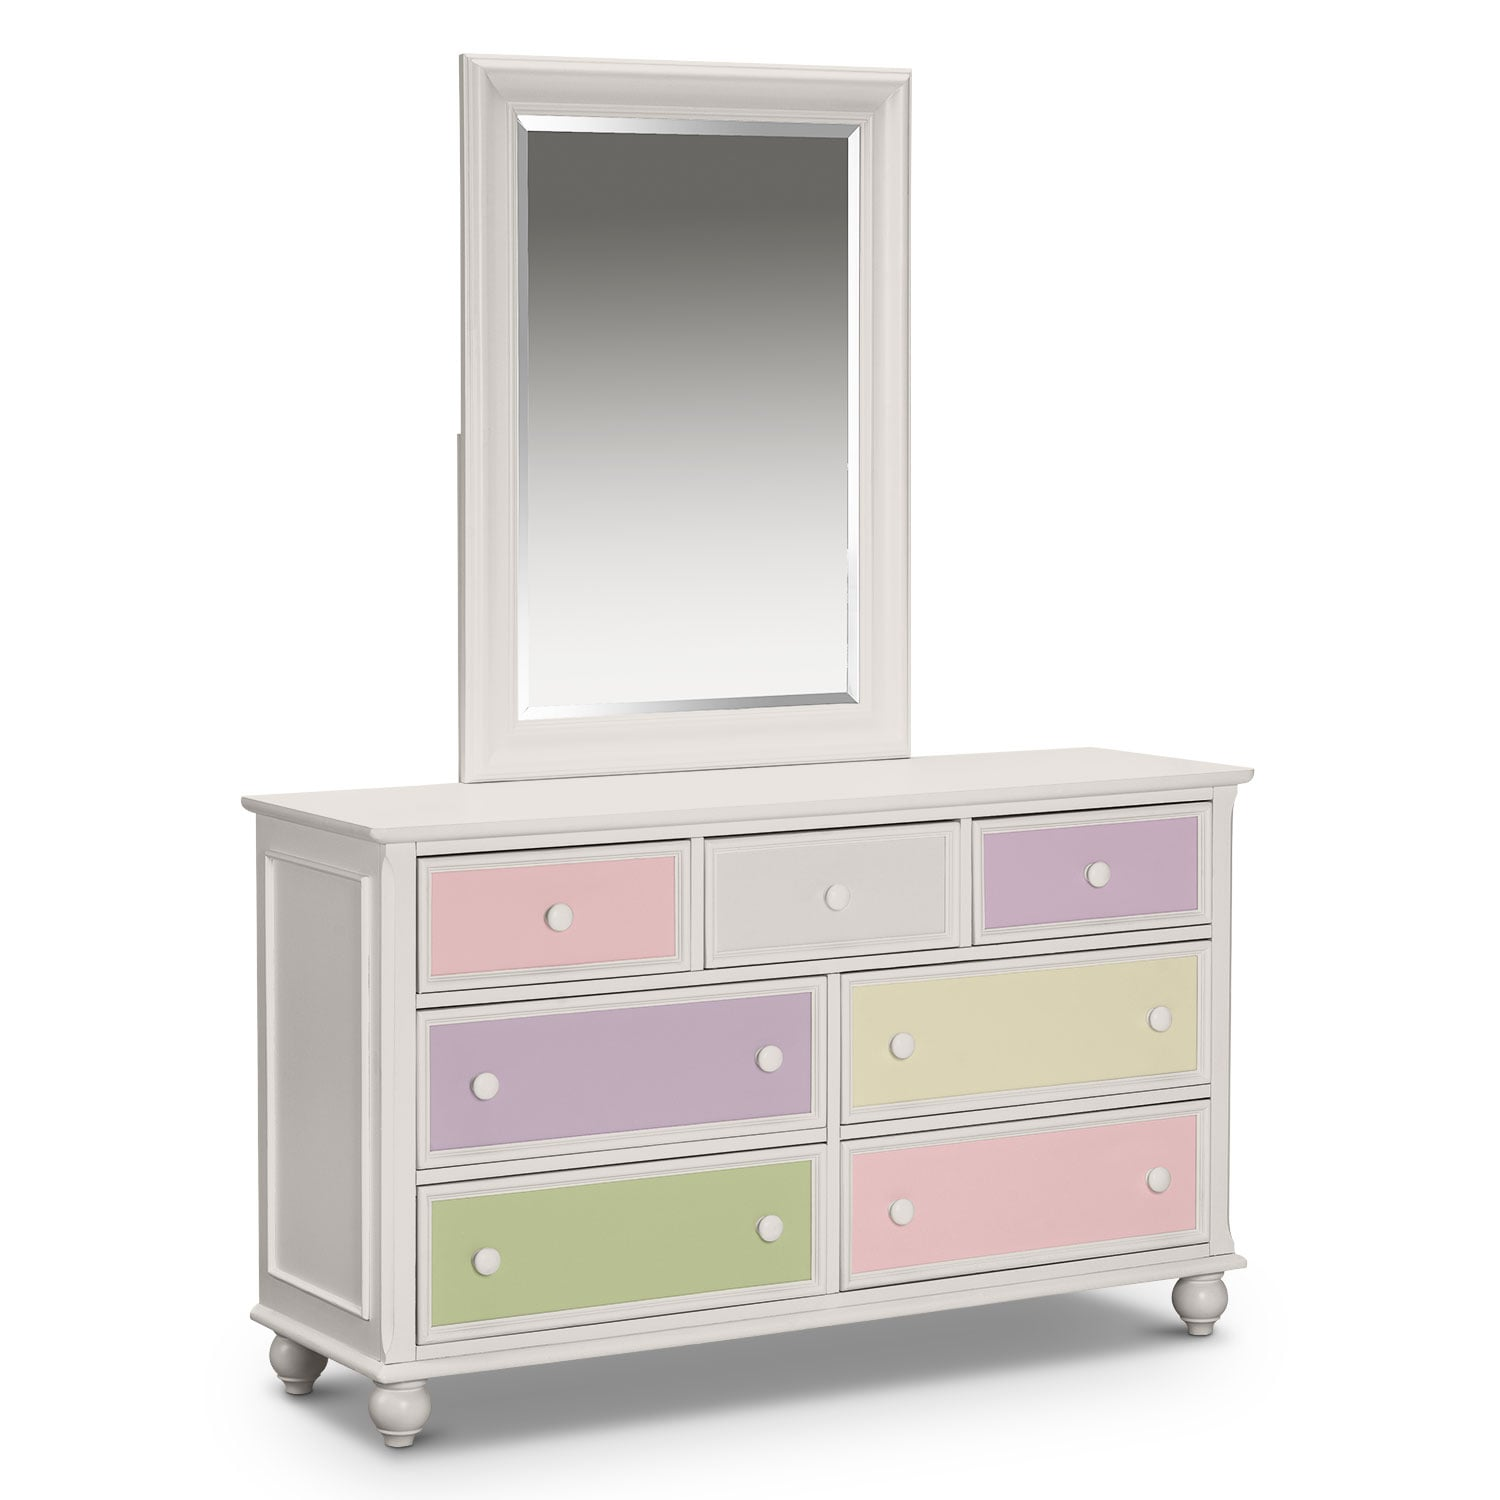 Kids Furniture - Colorworks Dresser and Mirror